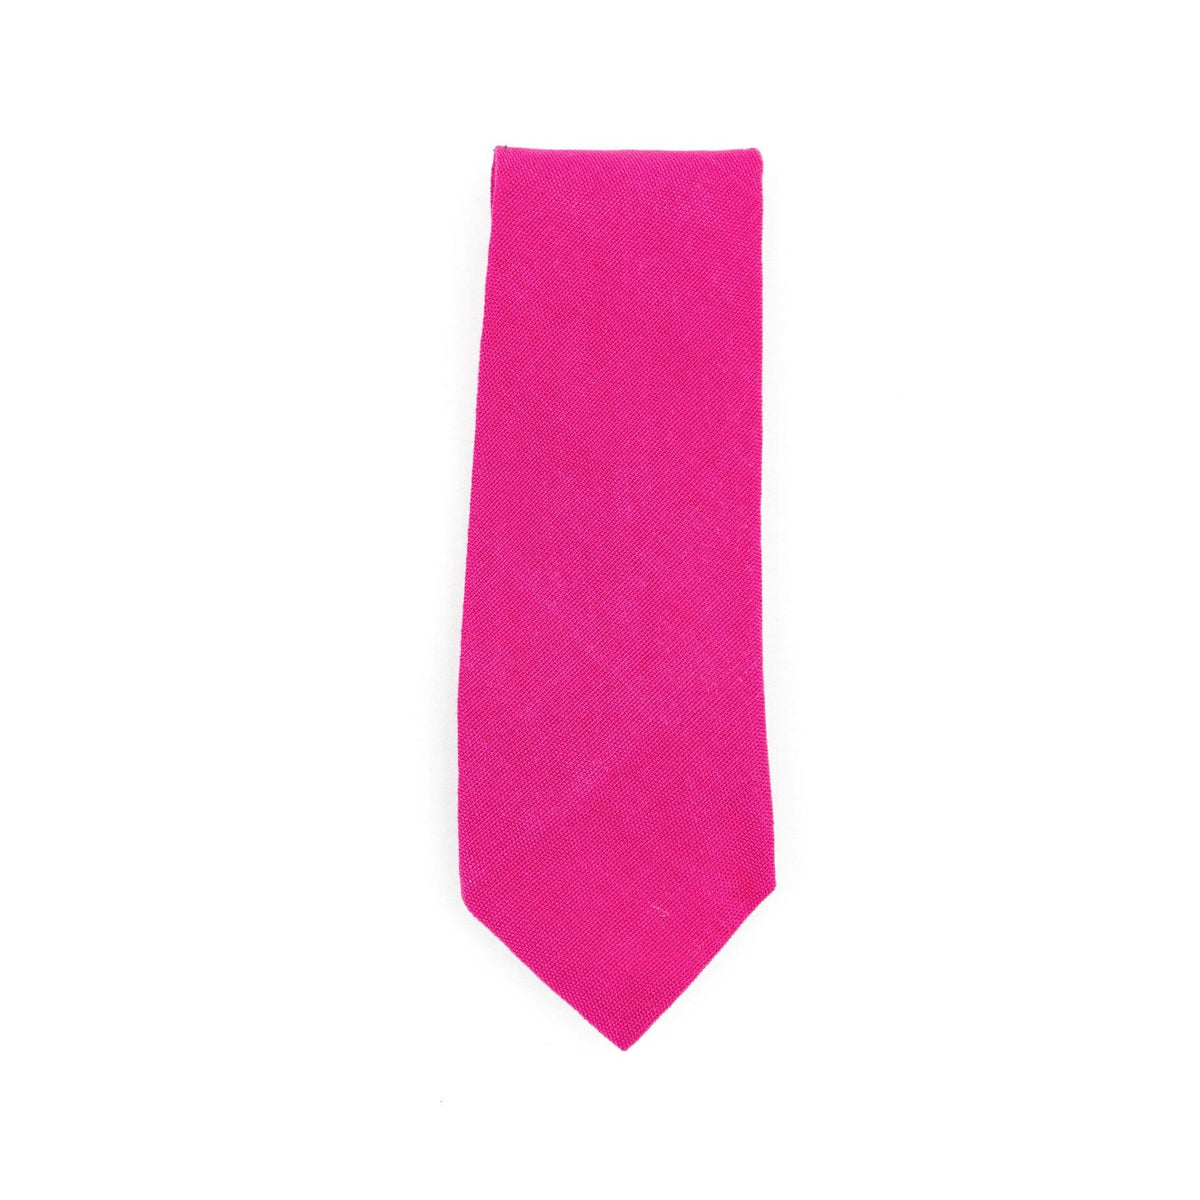 Fair Trade Guatemalan Cotton Tie Fucsia